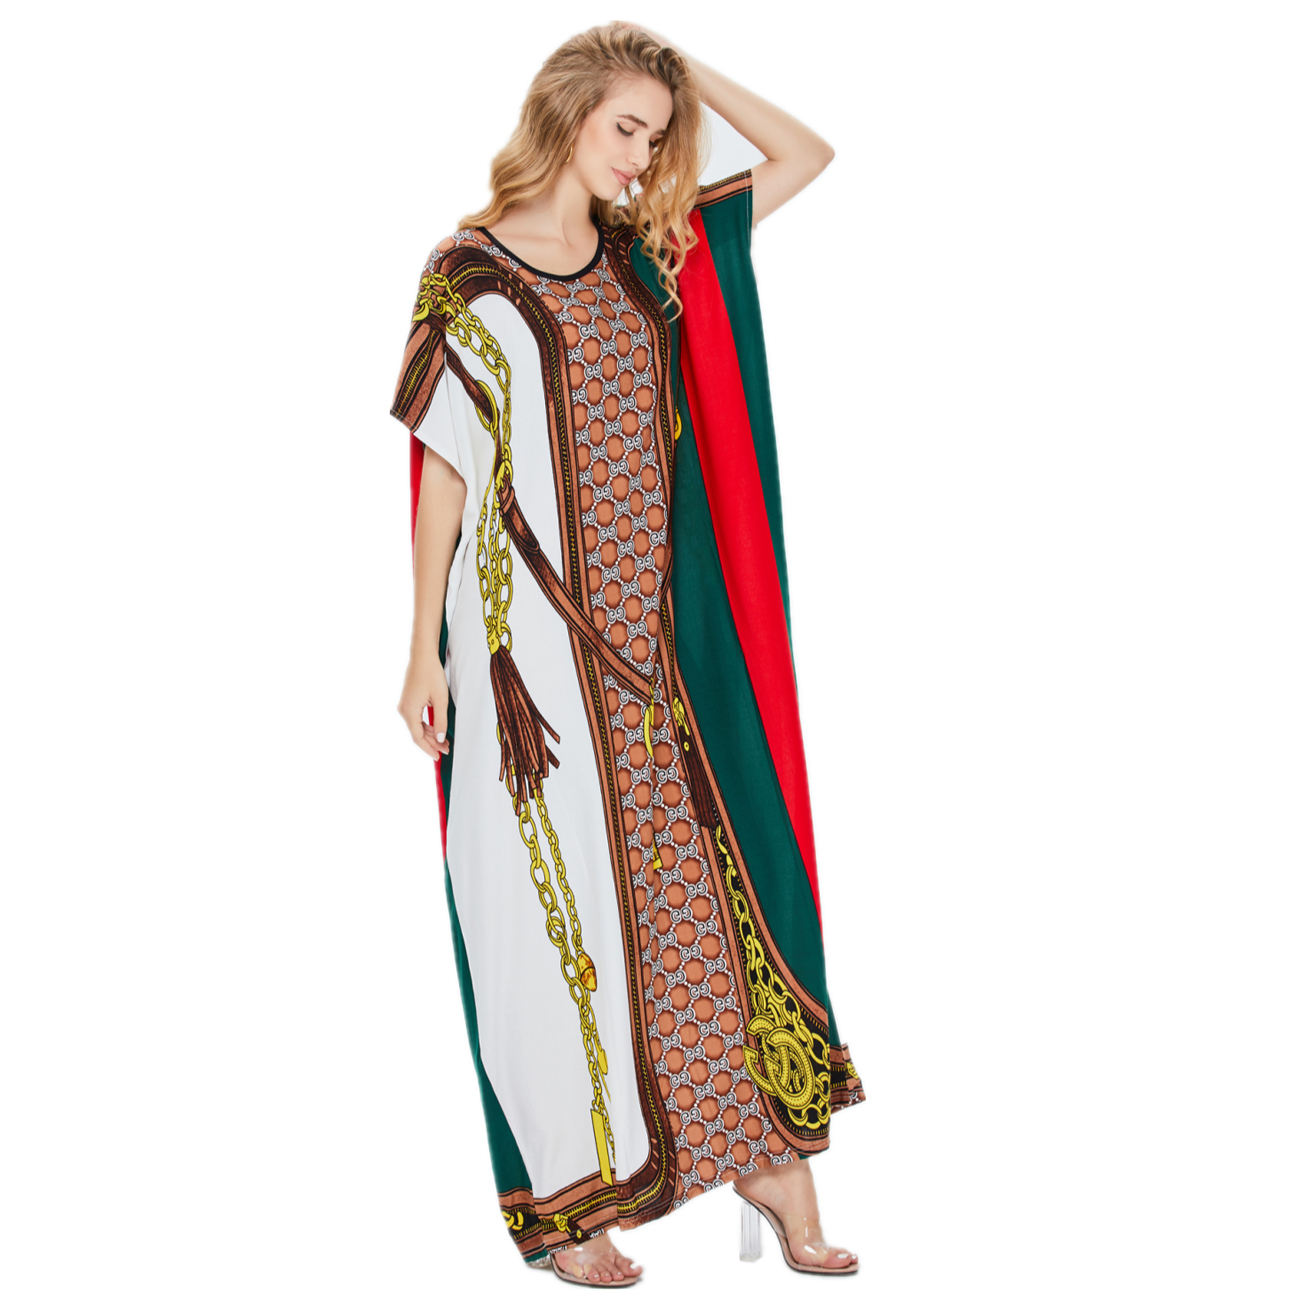 New Arrivals Summer Middle East National Robe soft fashion women Kaftan Muslim Dress